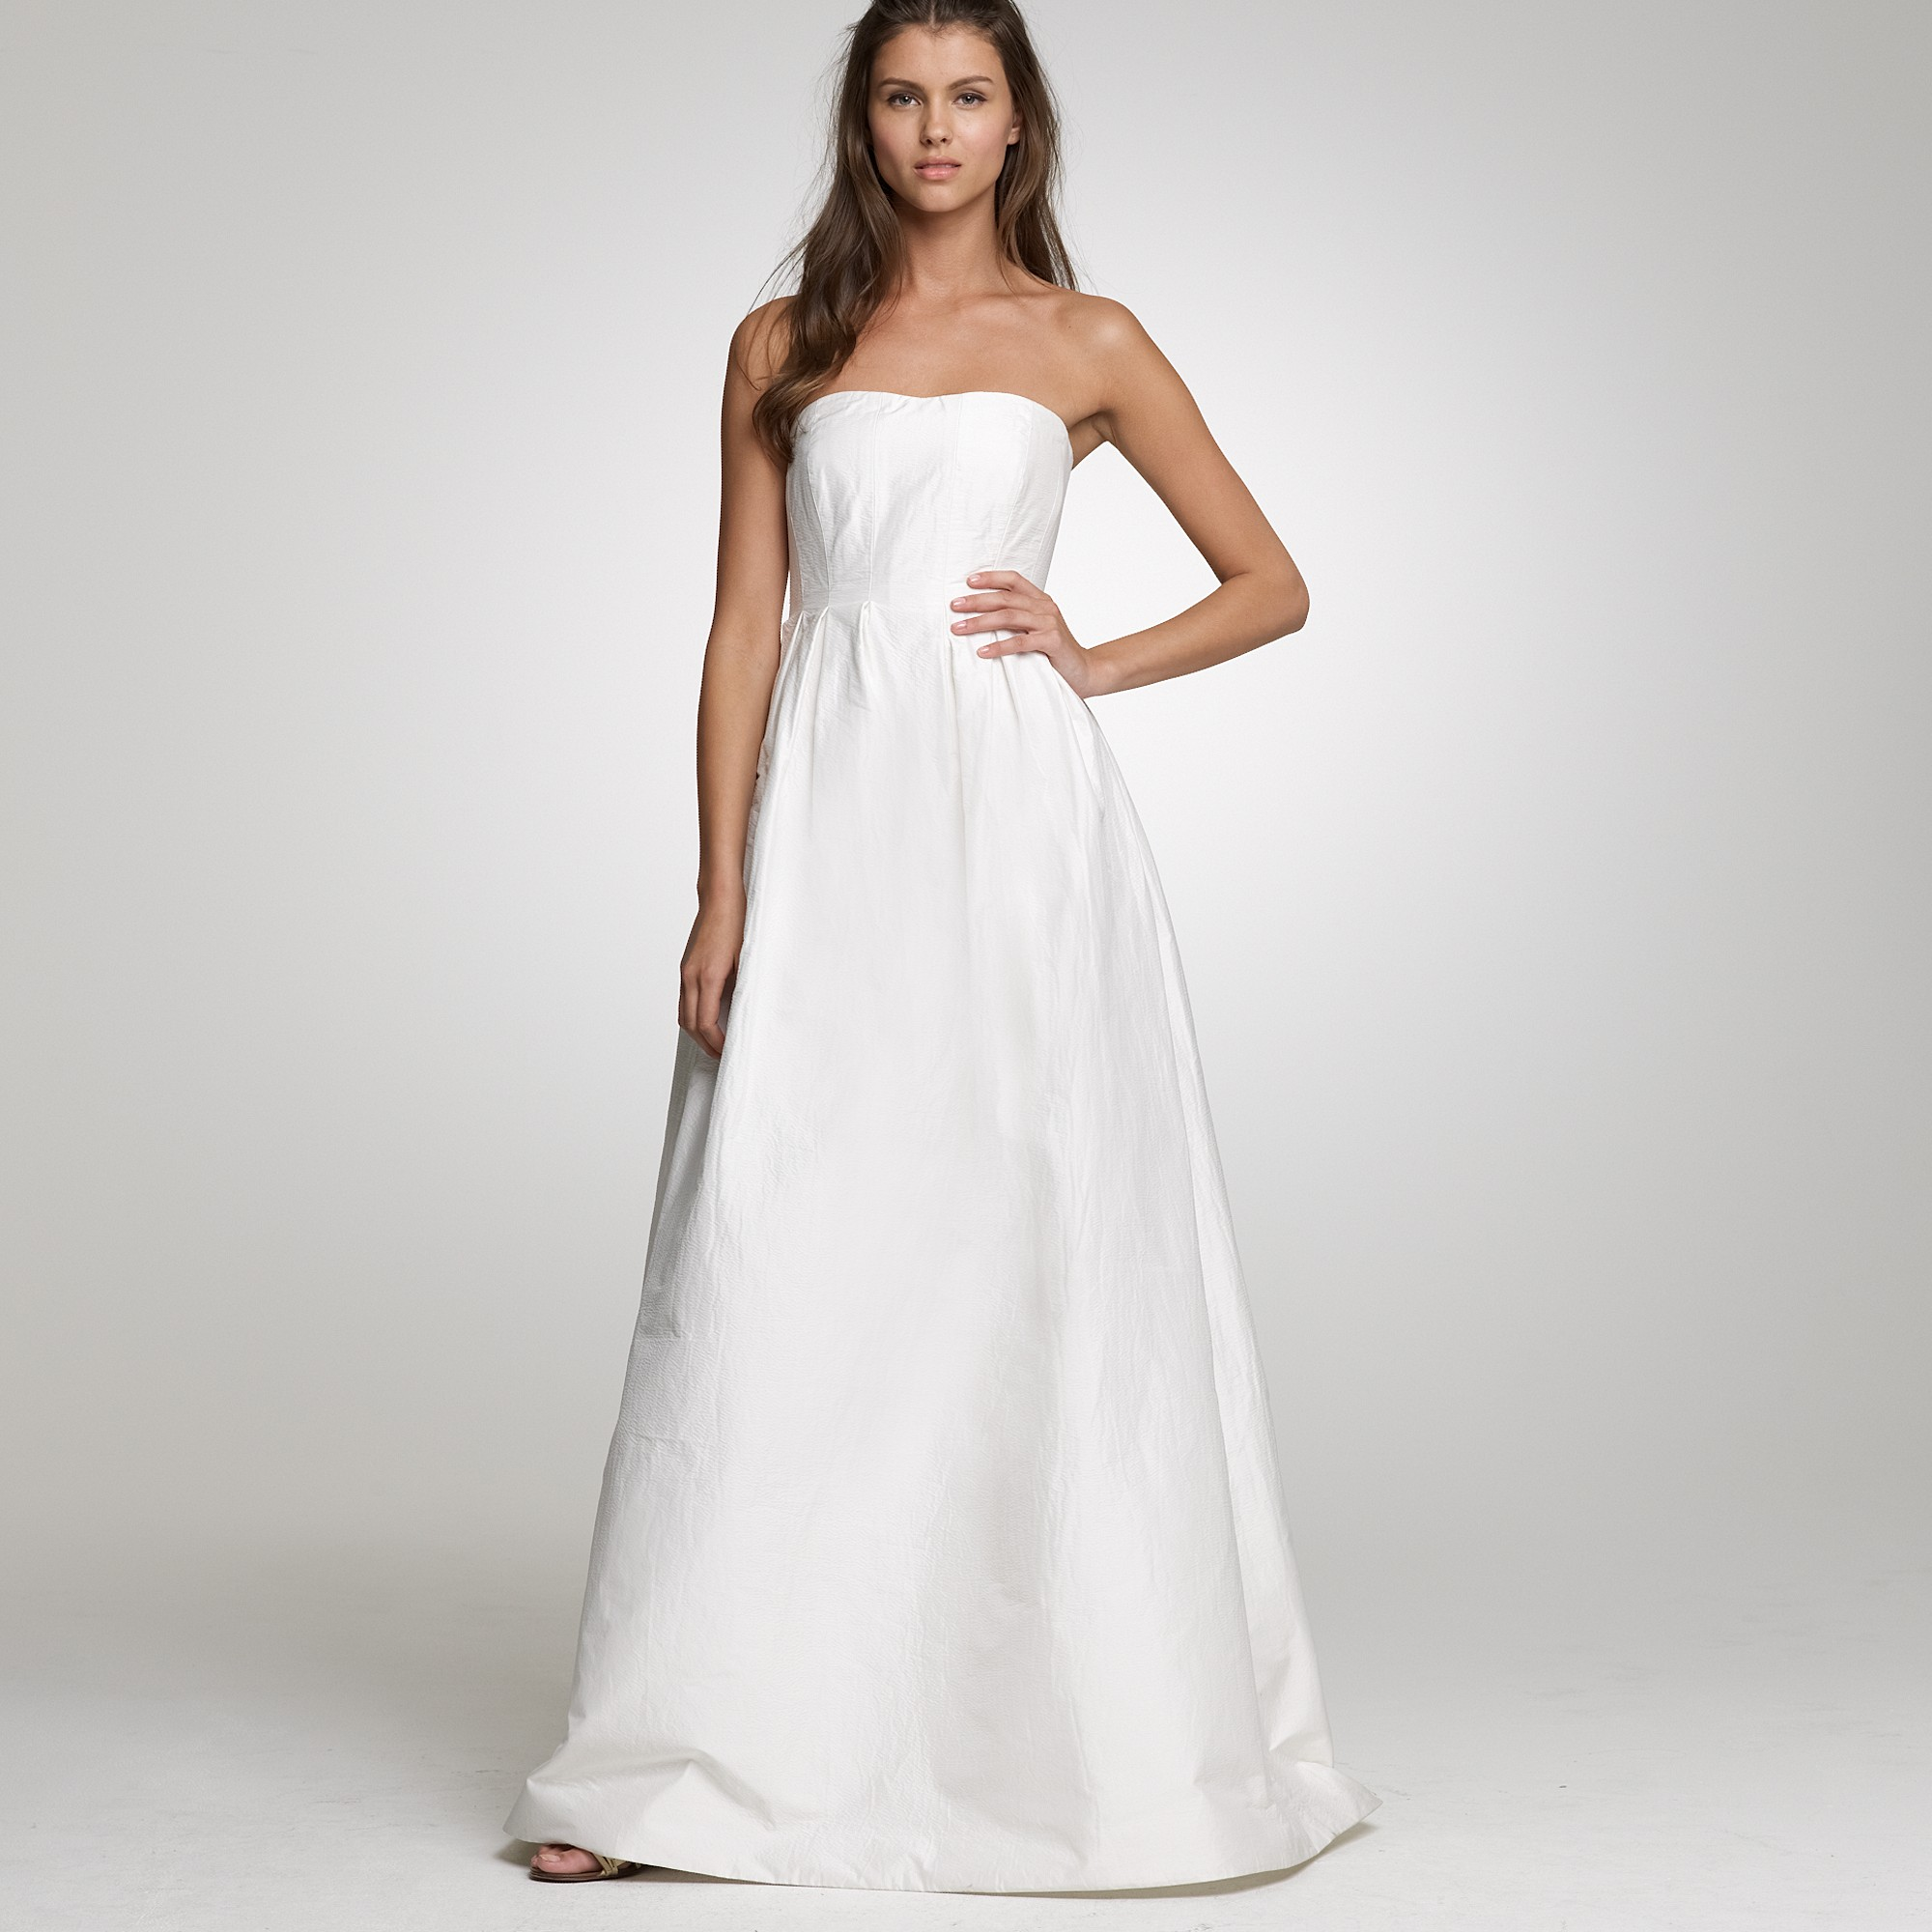 Lyst - J.Crew Lucinda Ball Gown in White